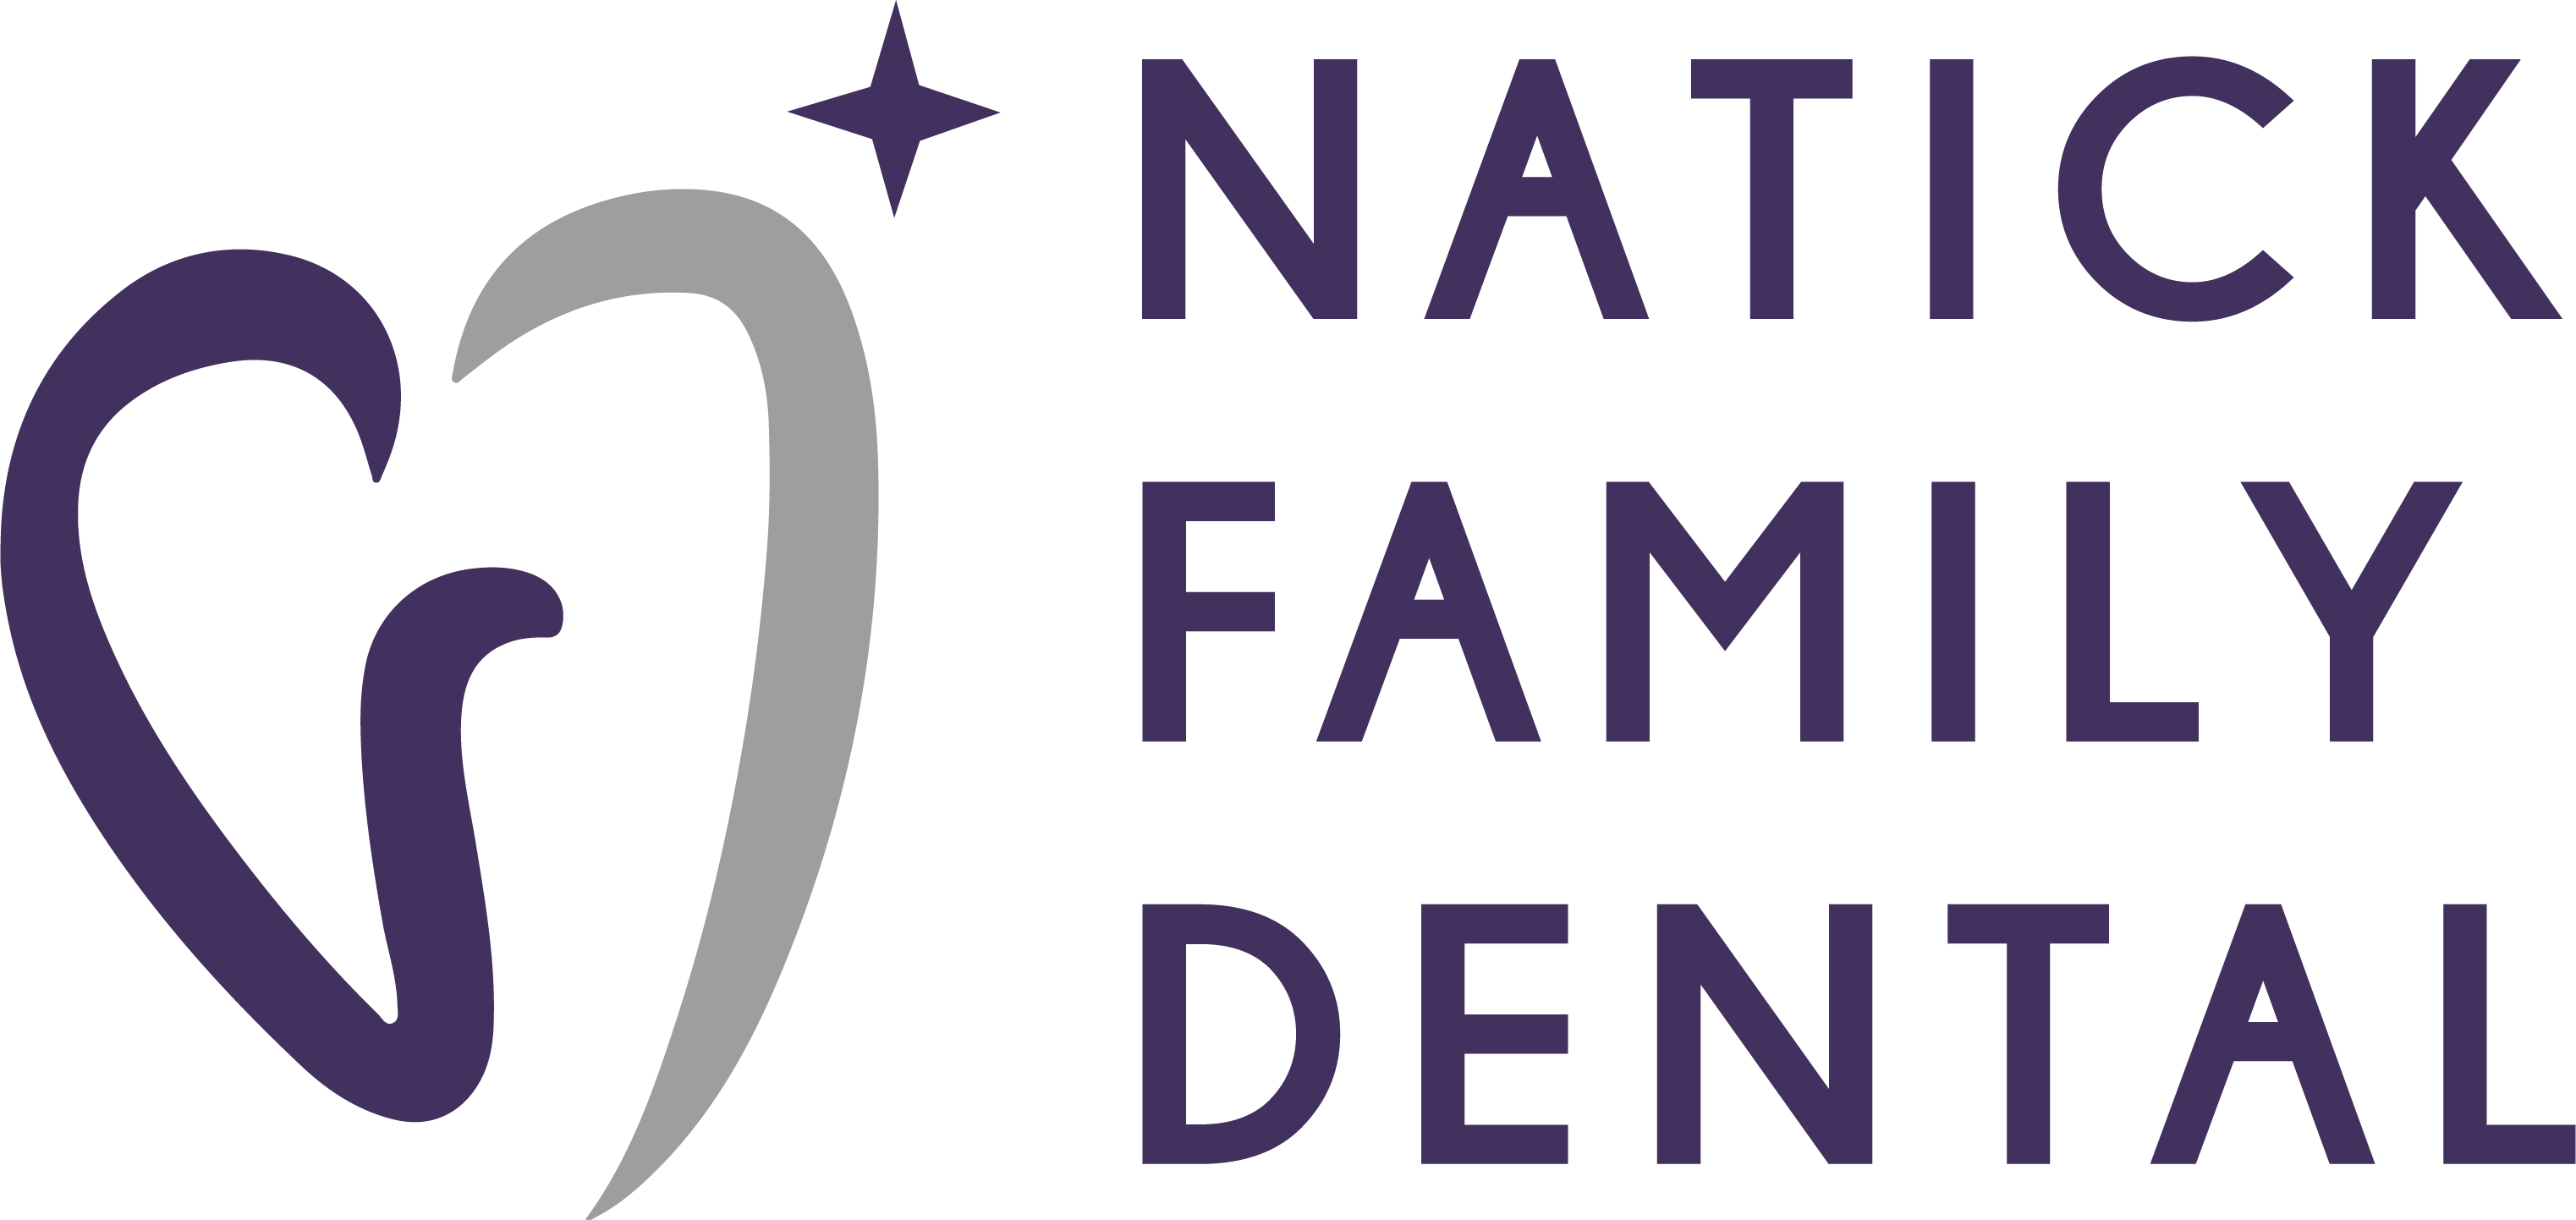 Natick Family Dental